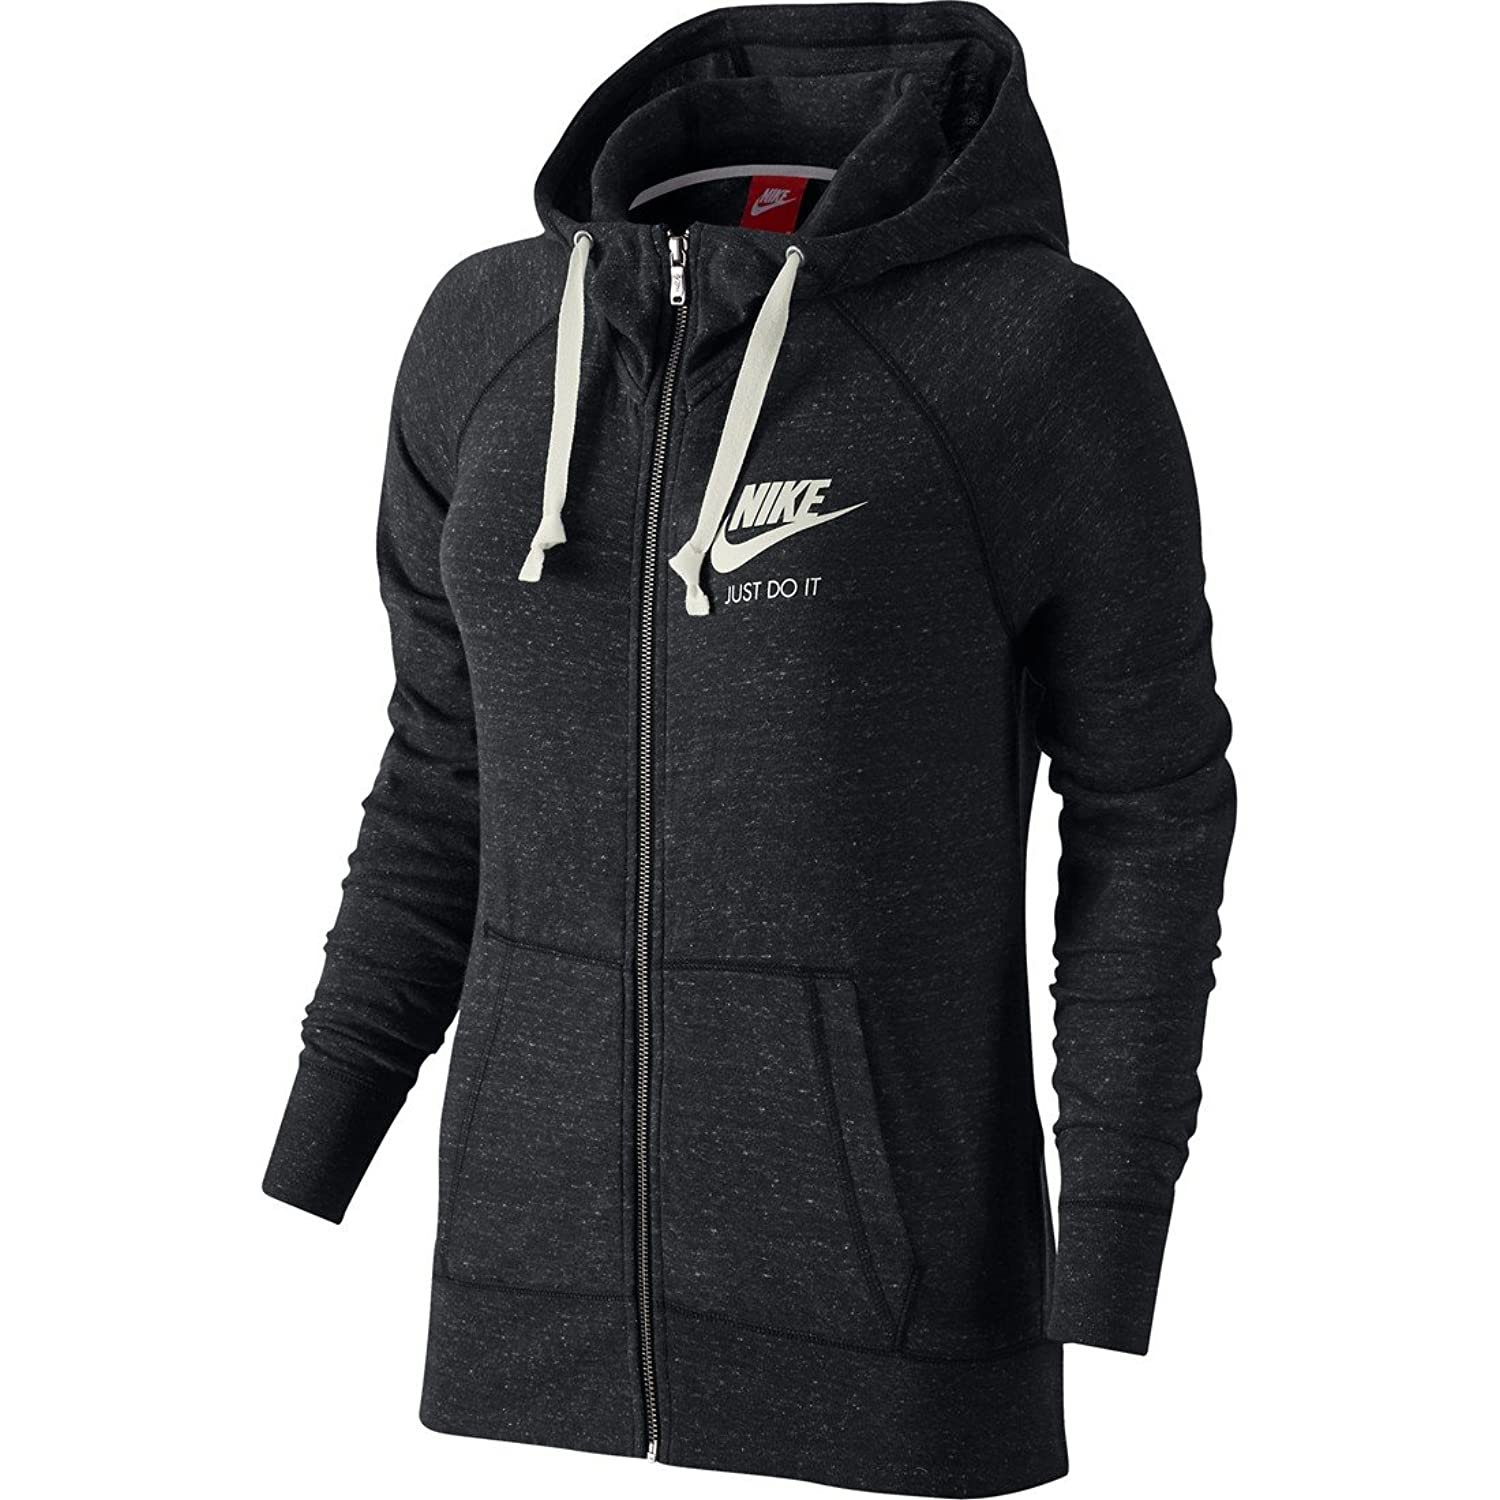 Nike Women's Gym Vintage Full Zip Front Hoodie at Amazon Women's ...